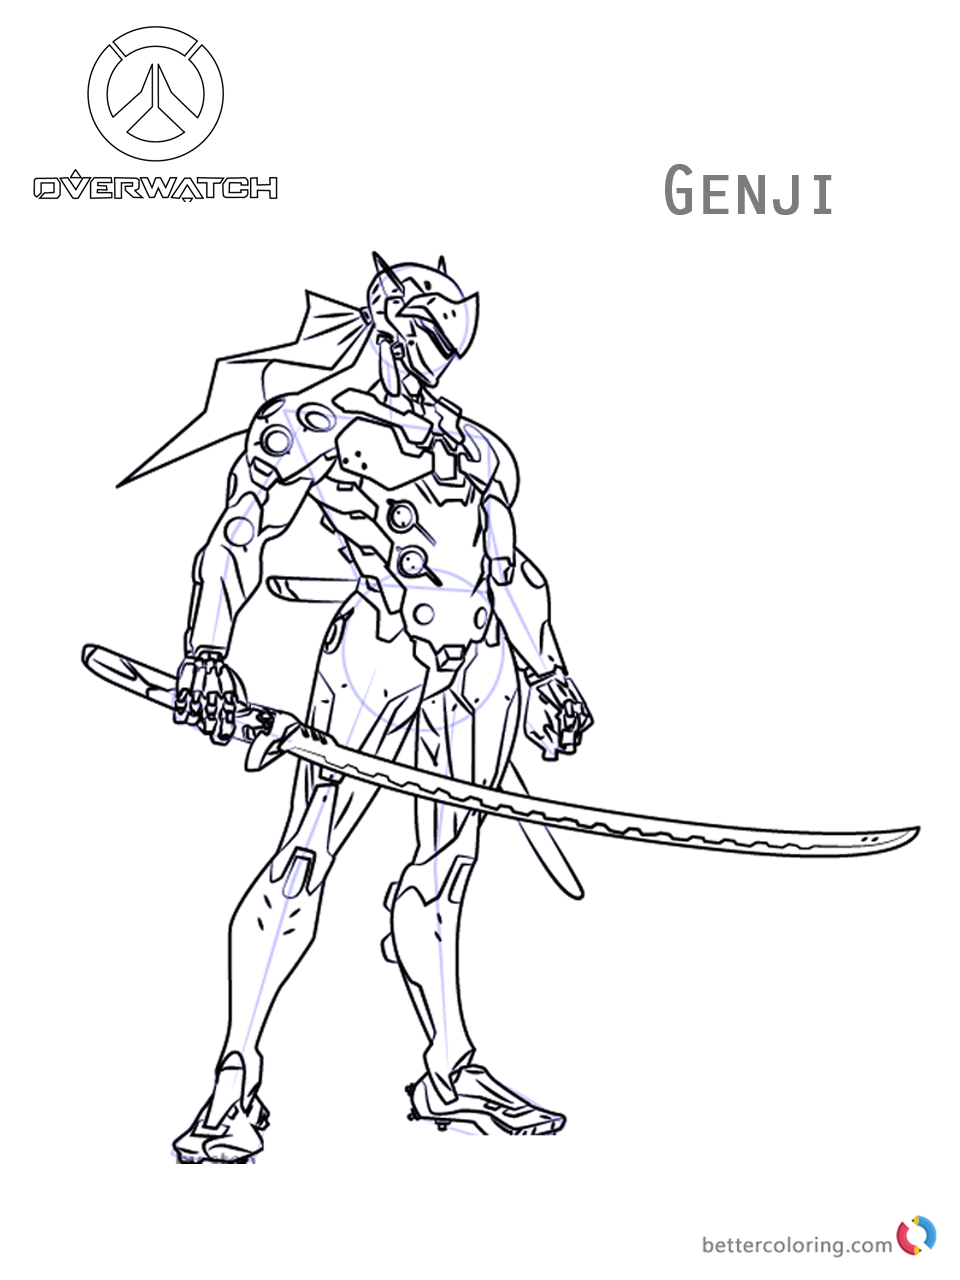 960x1280 Genji From Overwatch Coloring Pages